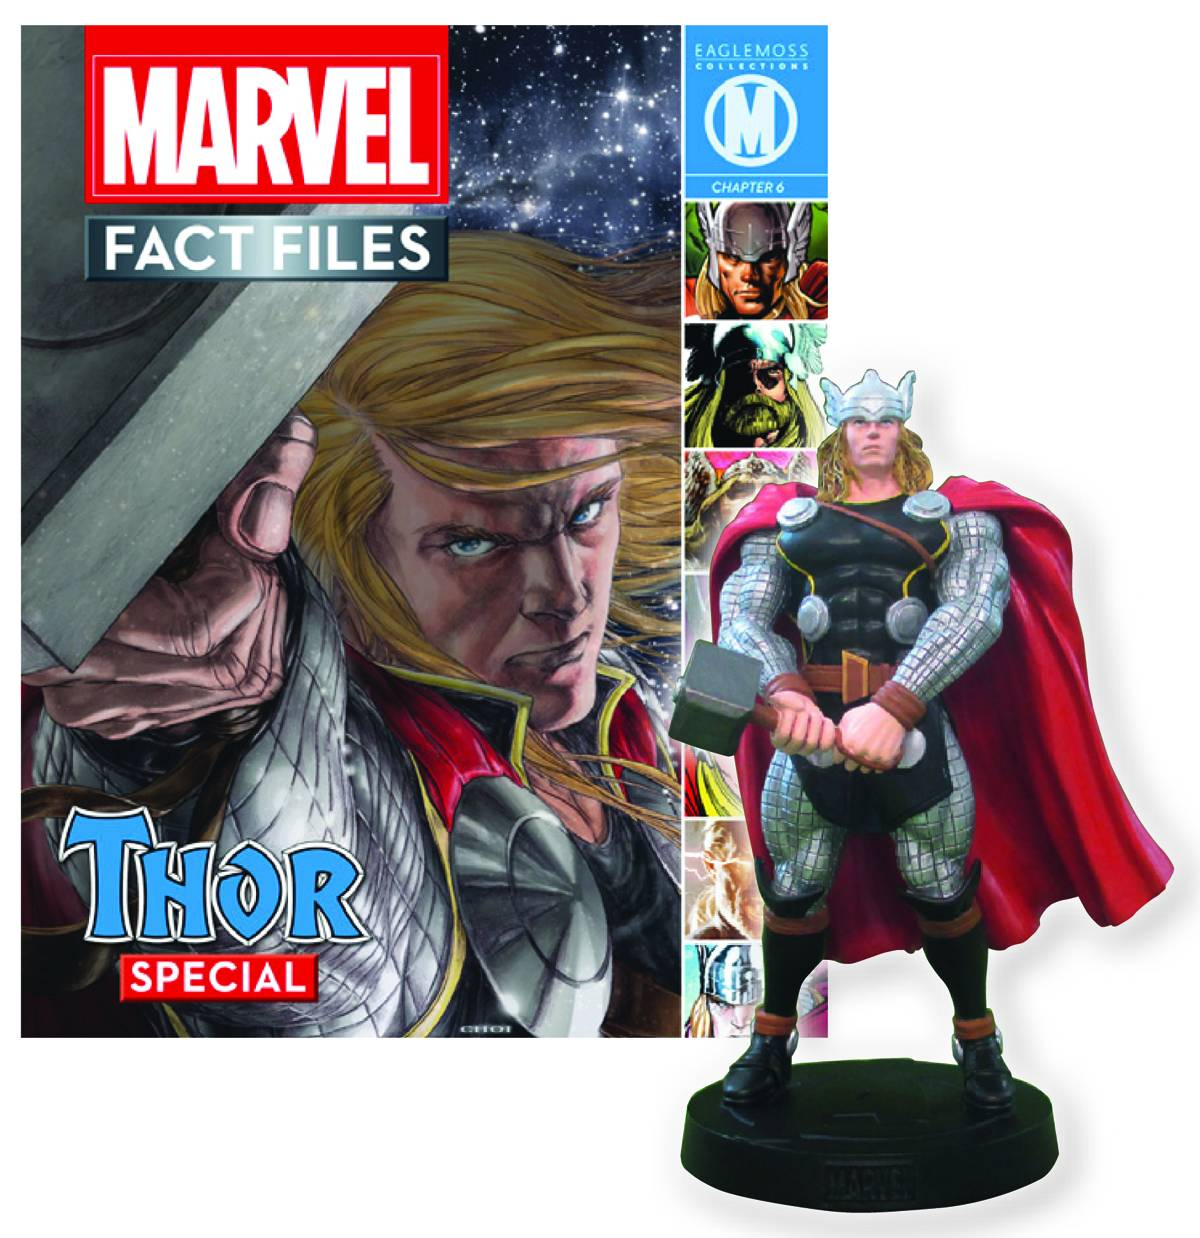 Eaglemoss Marvel Comics Fact File Thor Figurine